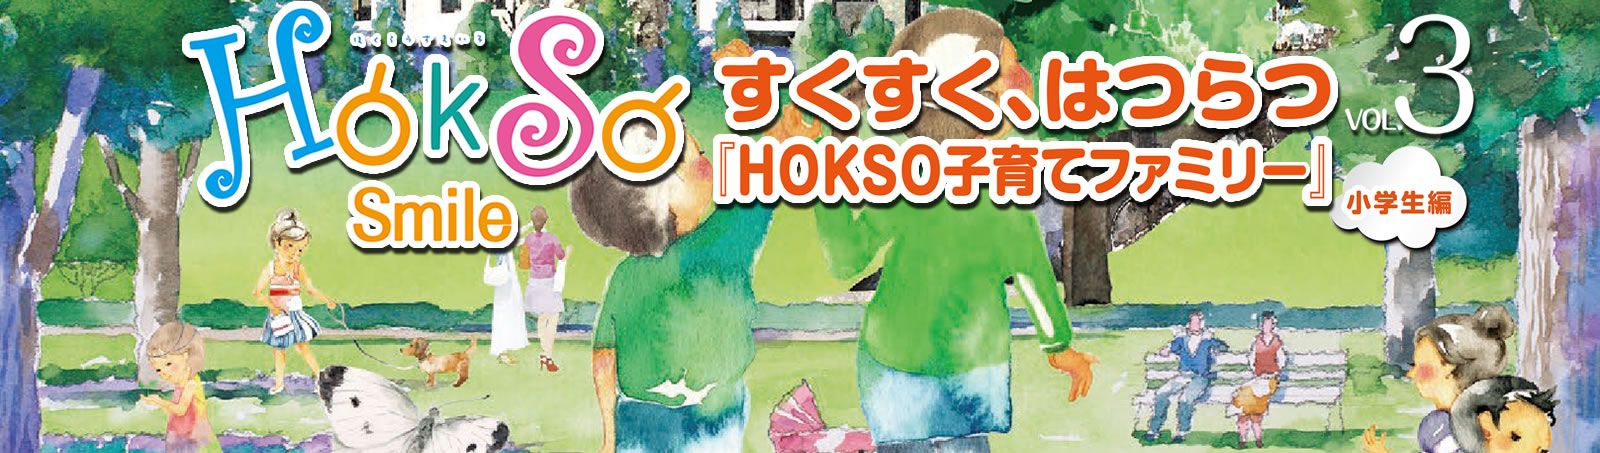 Hokso Smile Vol.2